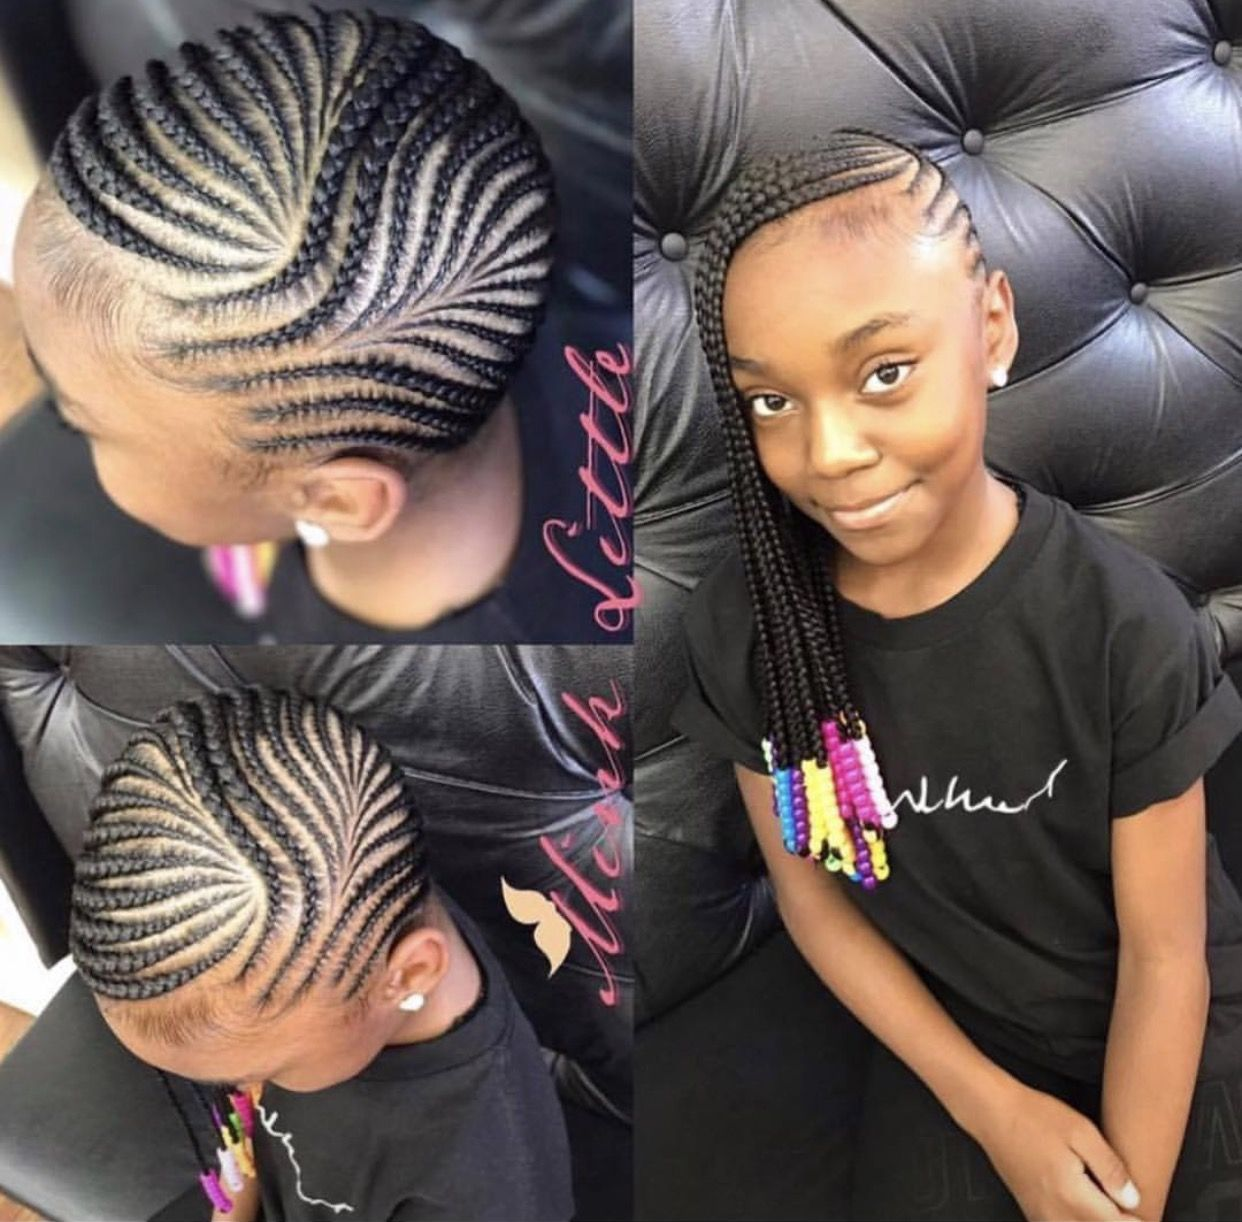 Children Hairstyles Stunning Pintakari Delancy On Hair Hair Hair & More Hair  Pinterest